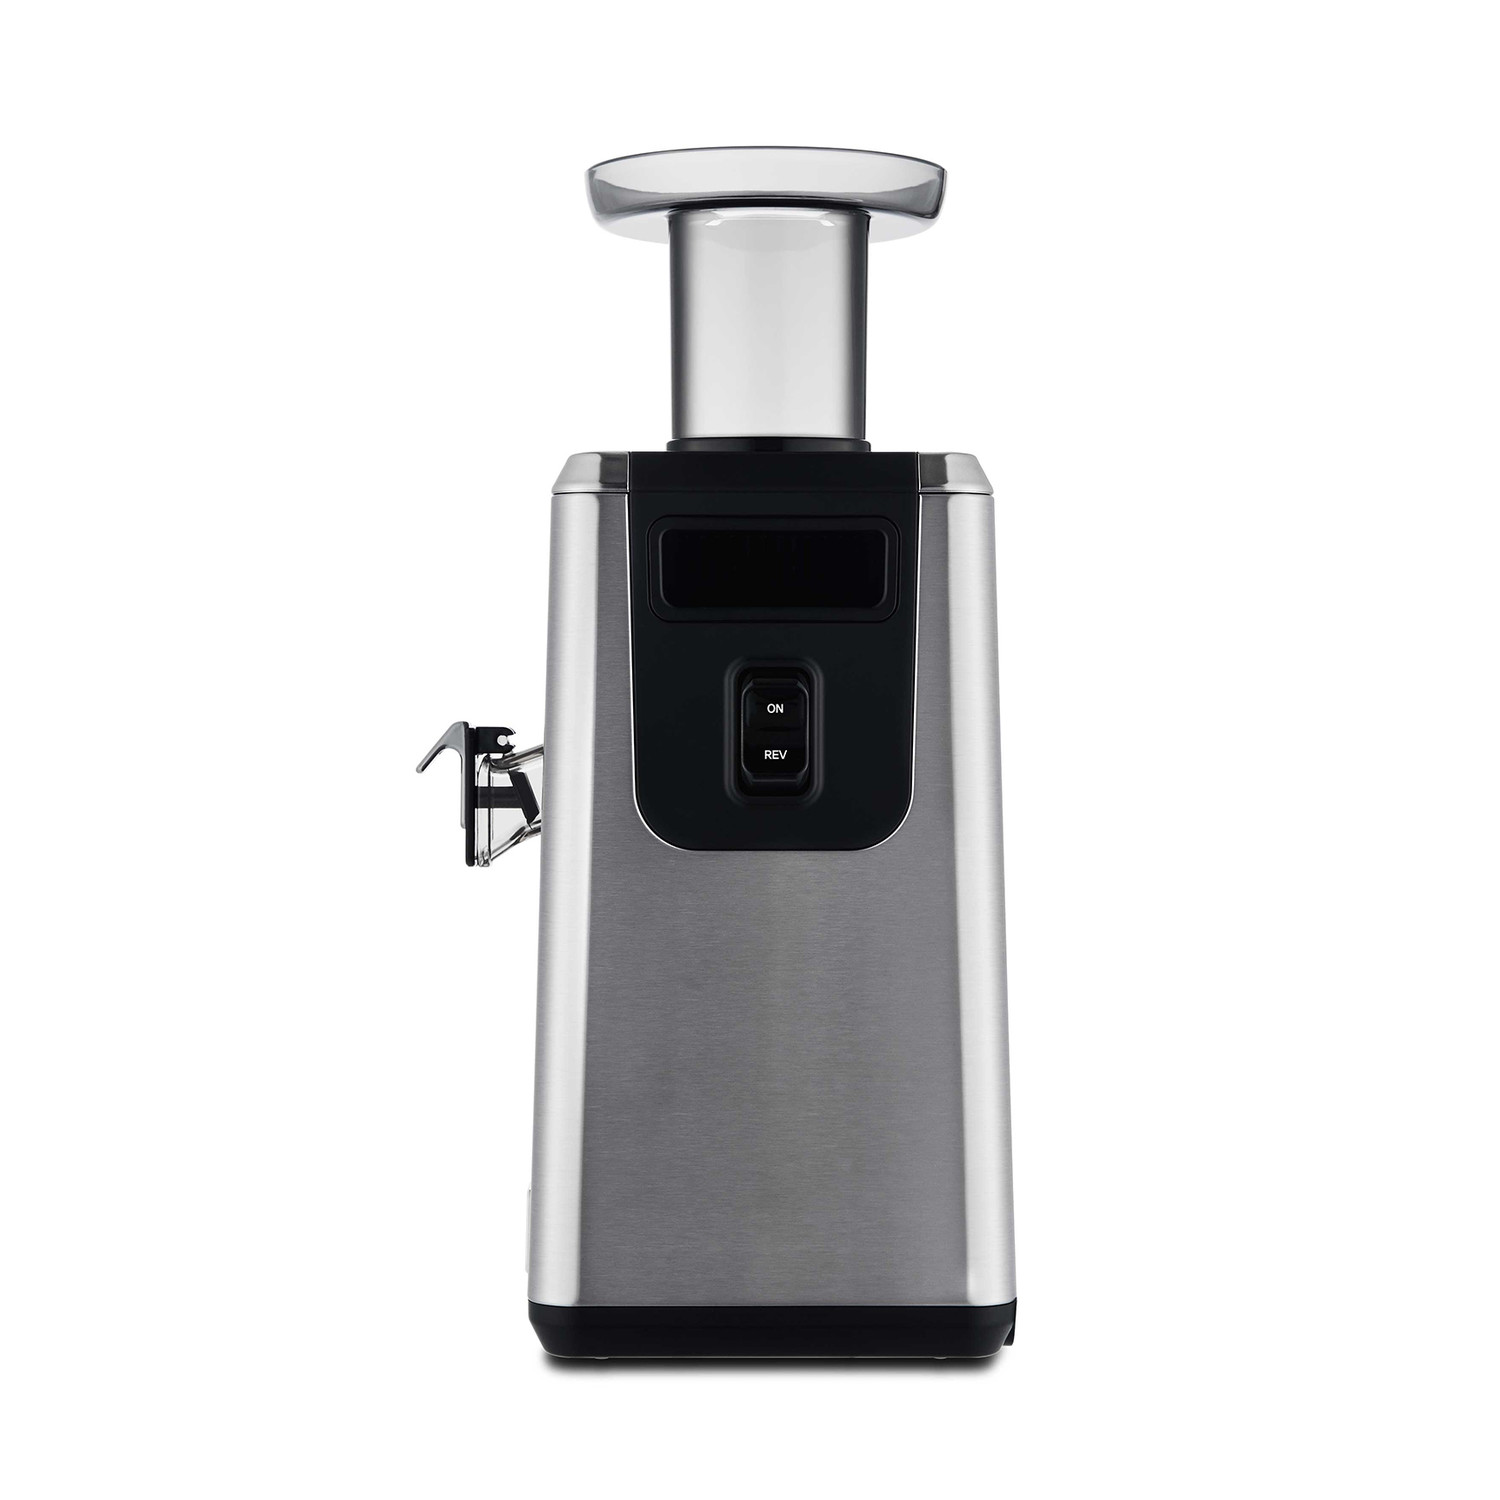 Hurom Hz Slow Juicer : Hurom HZ Slow Juicer + Juice Jar (Silver) - Hurom - Touch of Modern